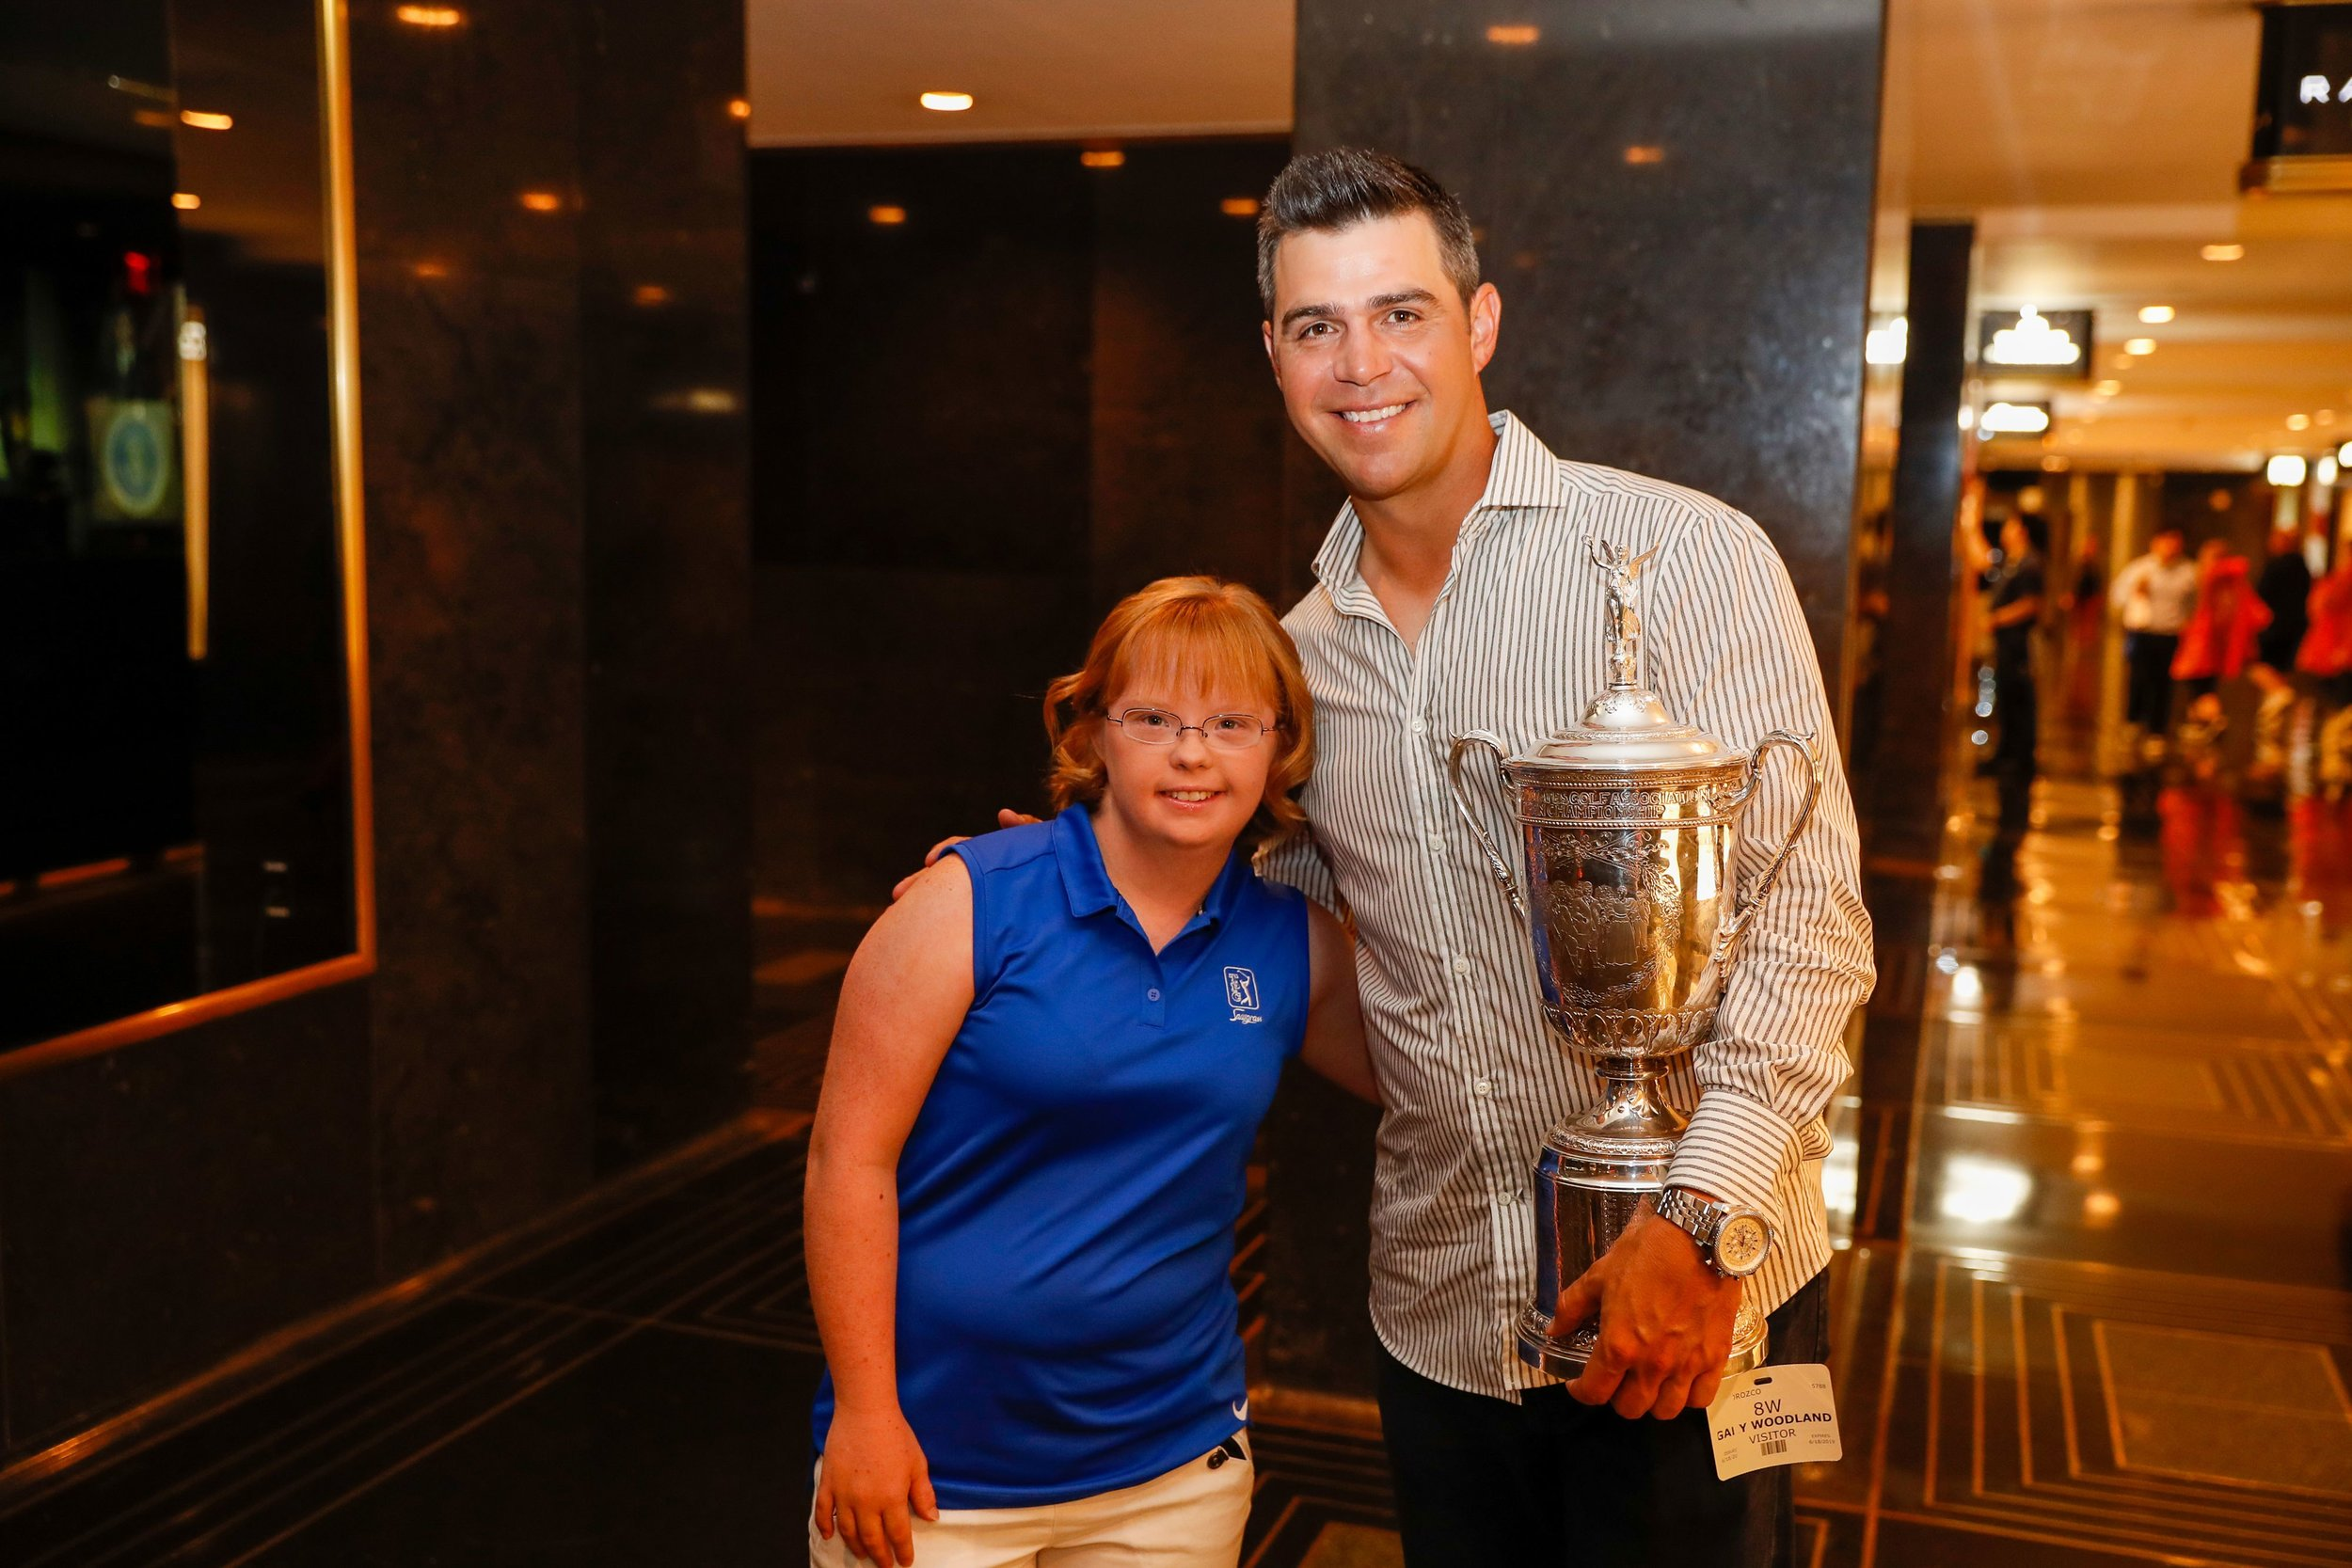 US Open champion Gary Woodland and his friend, Amy Bockerstette. (Golfweek)